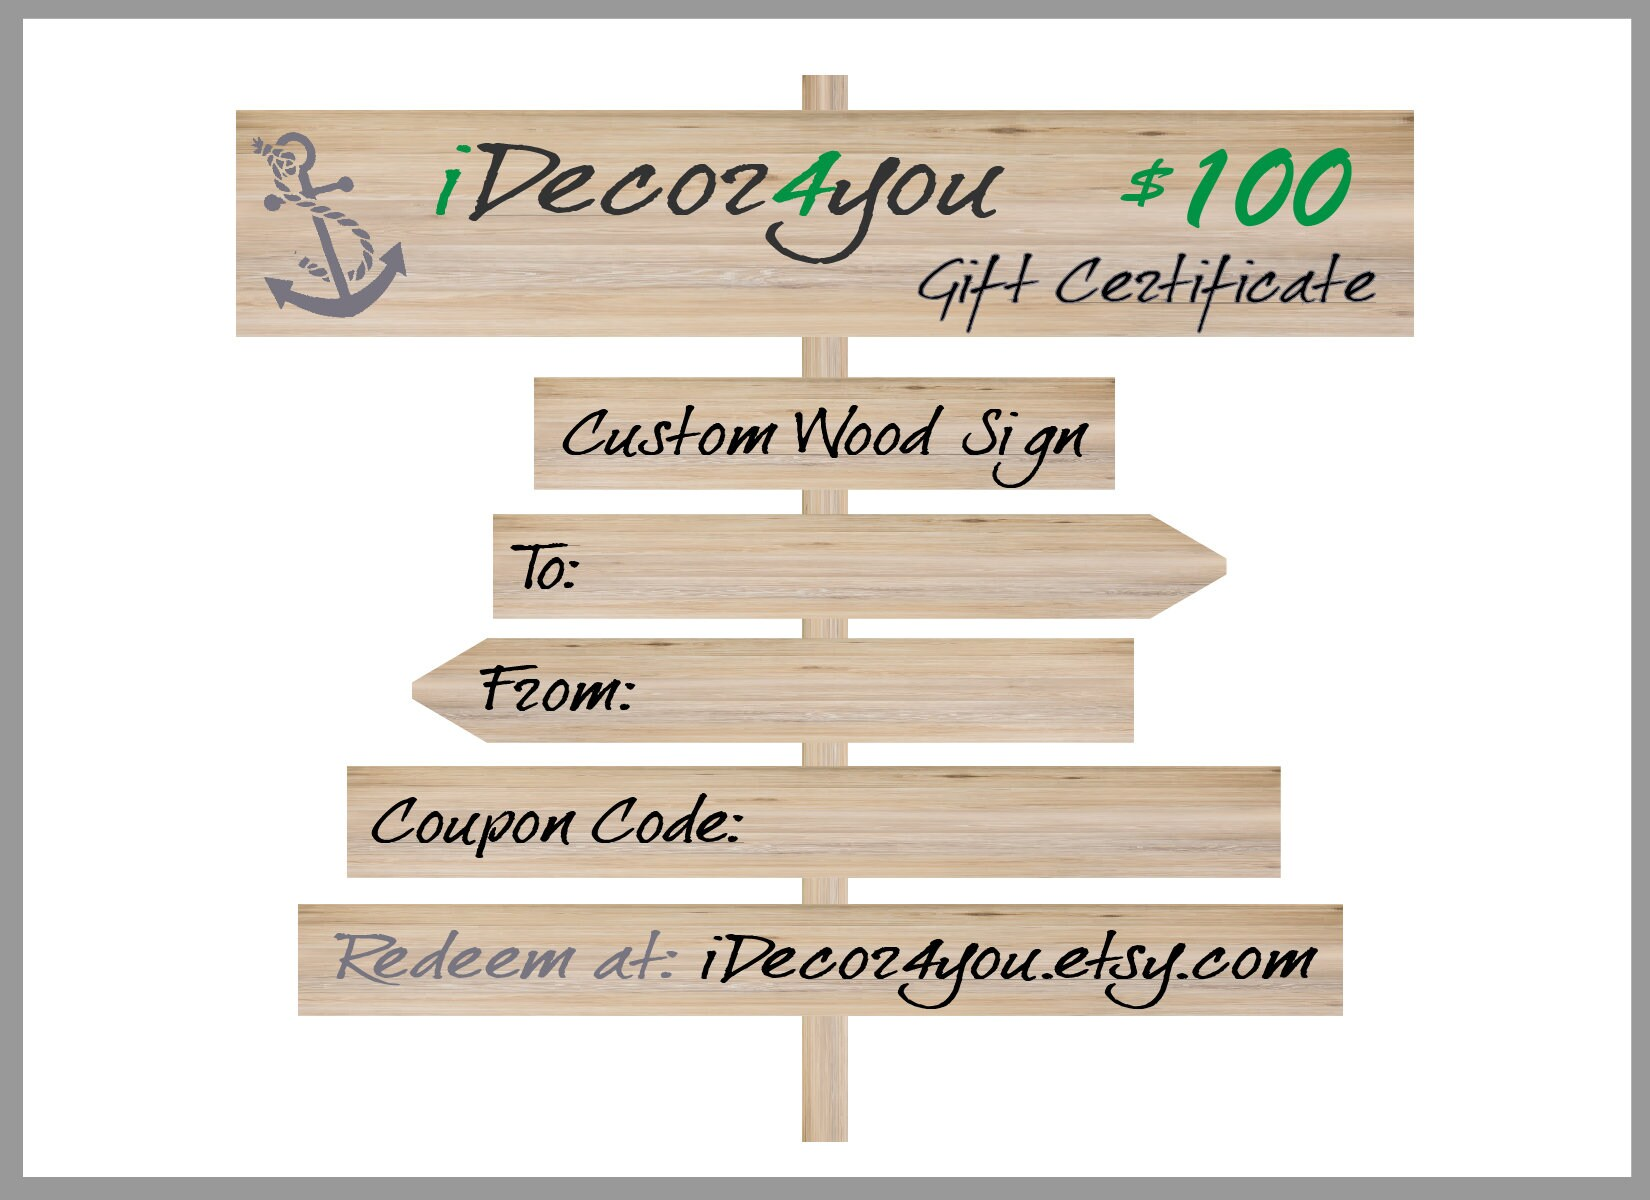 Last Minute Gift Certificate For Custom Wood Sign Gift Card